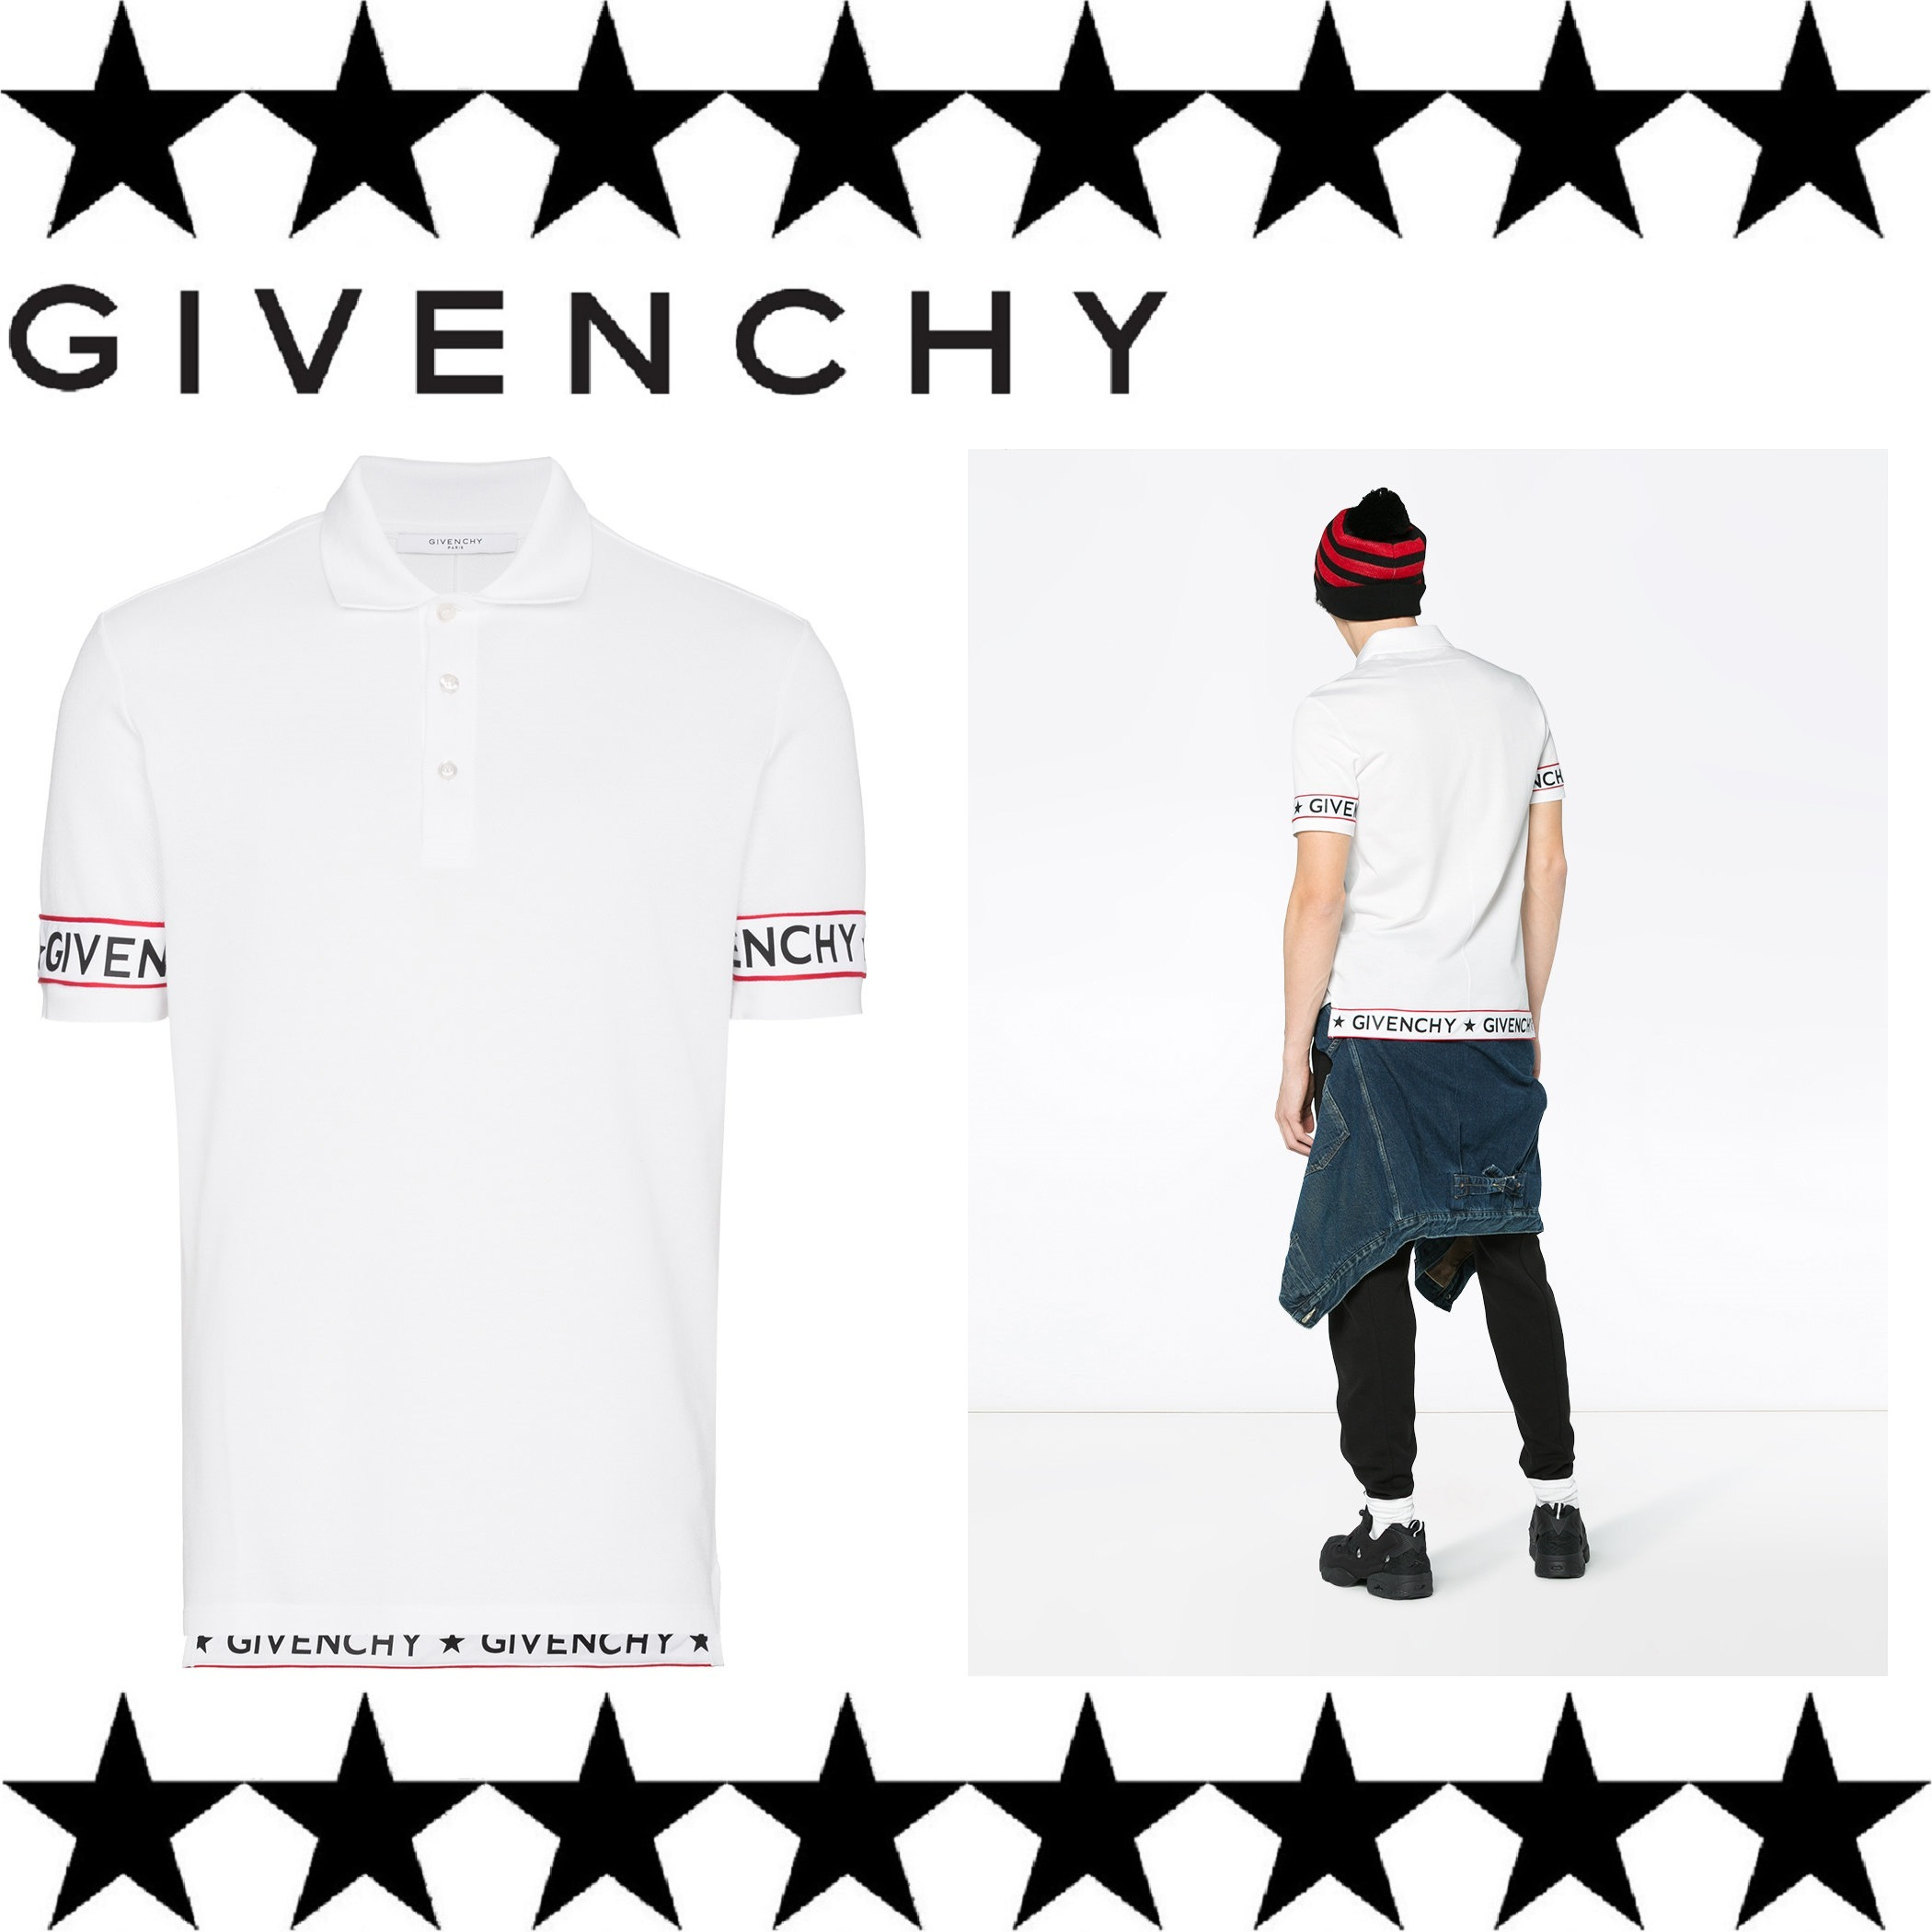 GIVENCHY (ジバンシィ) polo shirt white ロゴ ポロシャツ 白